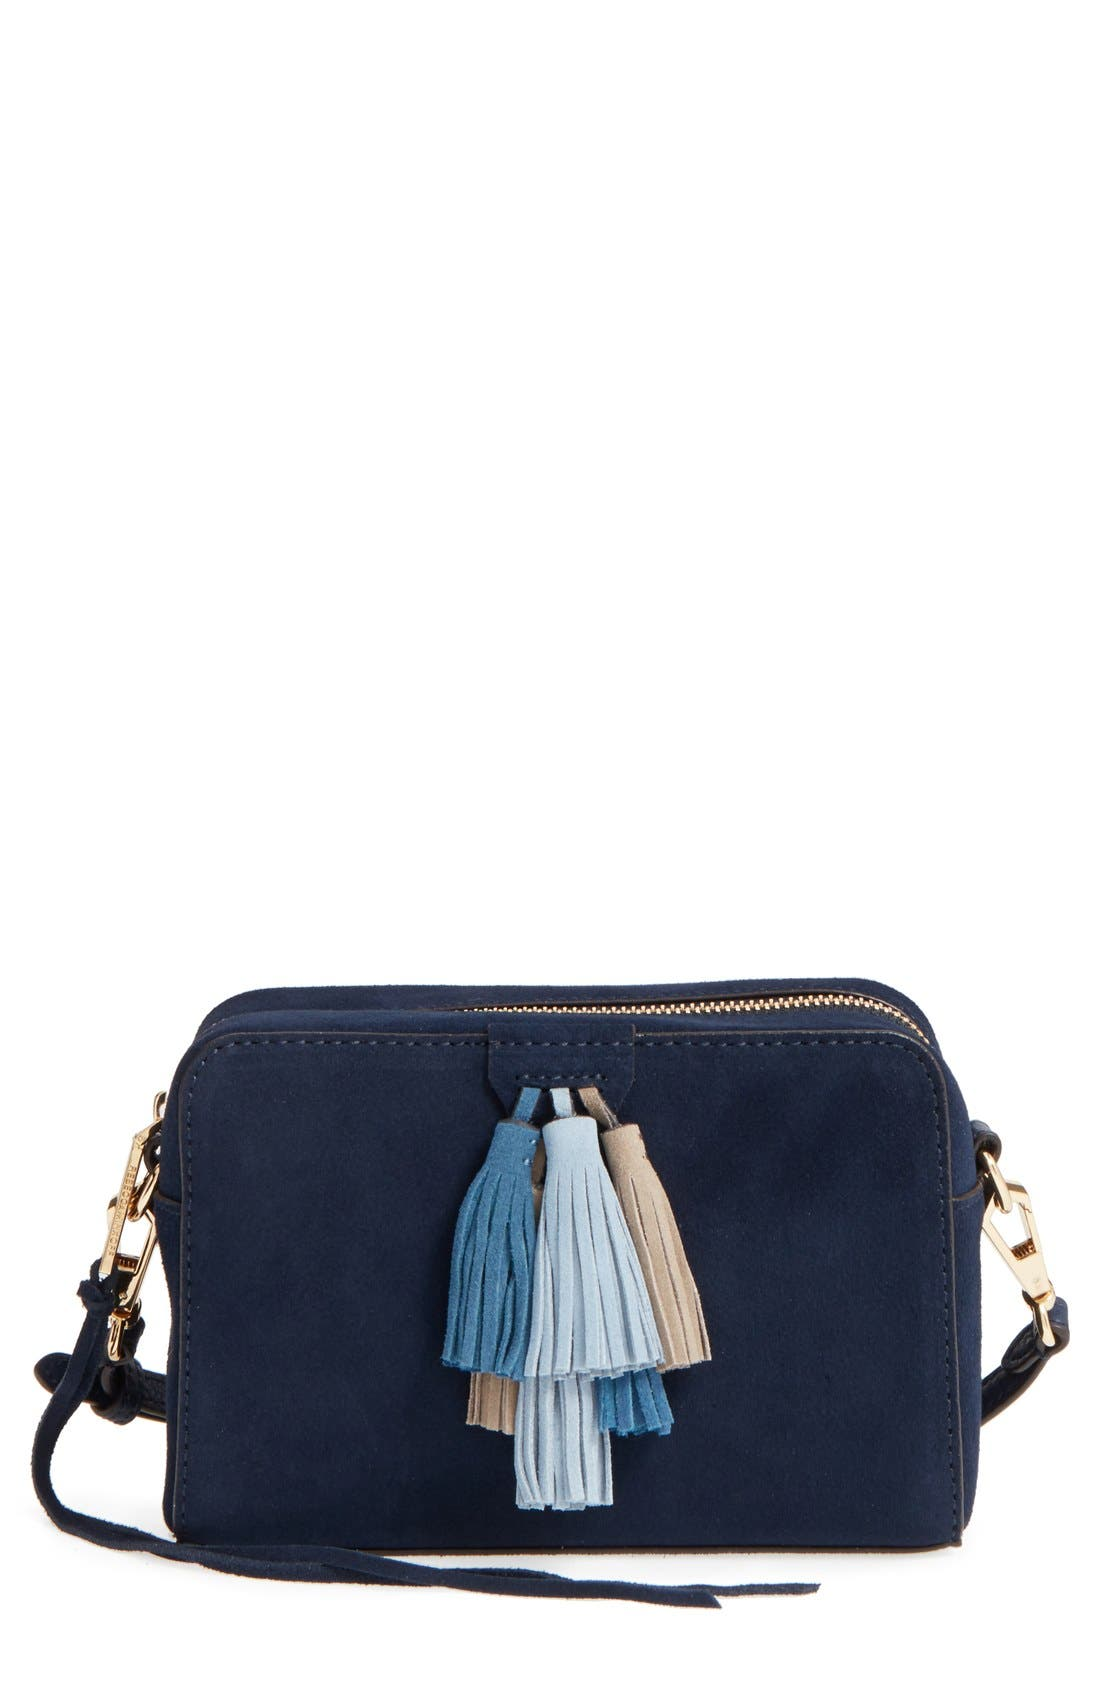 Main Image - Rebecca Minkoff 'Sofia' Crossbody Bag